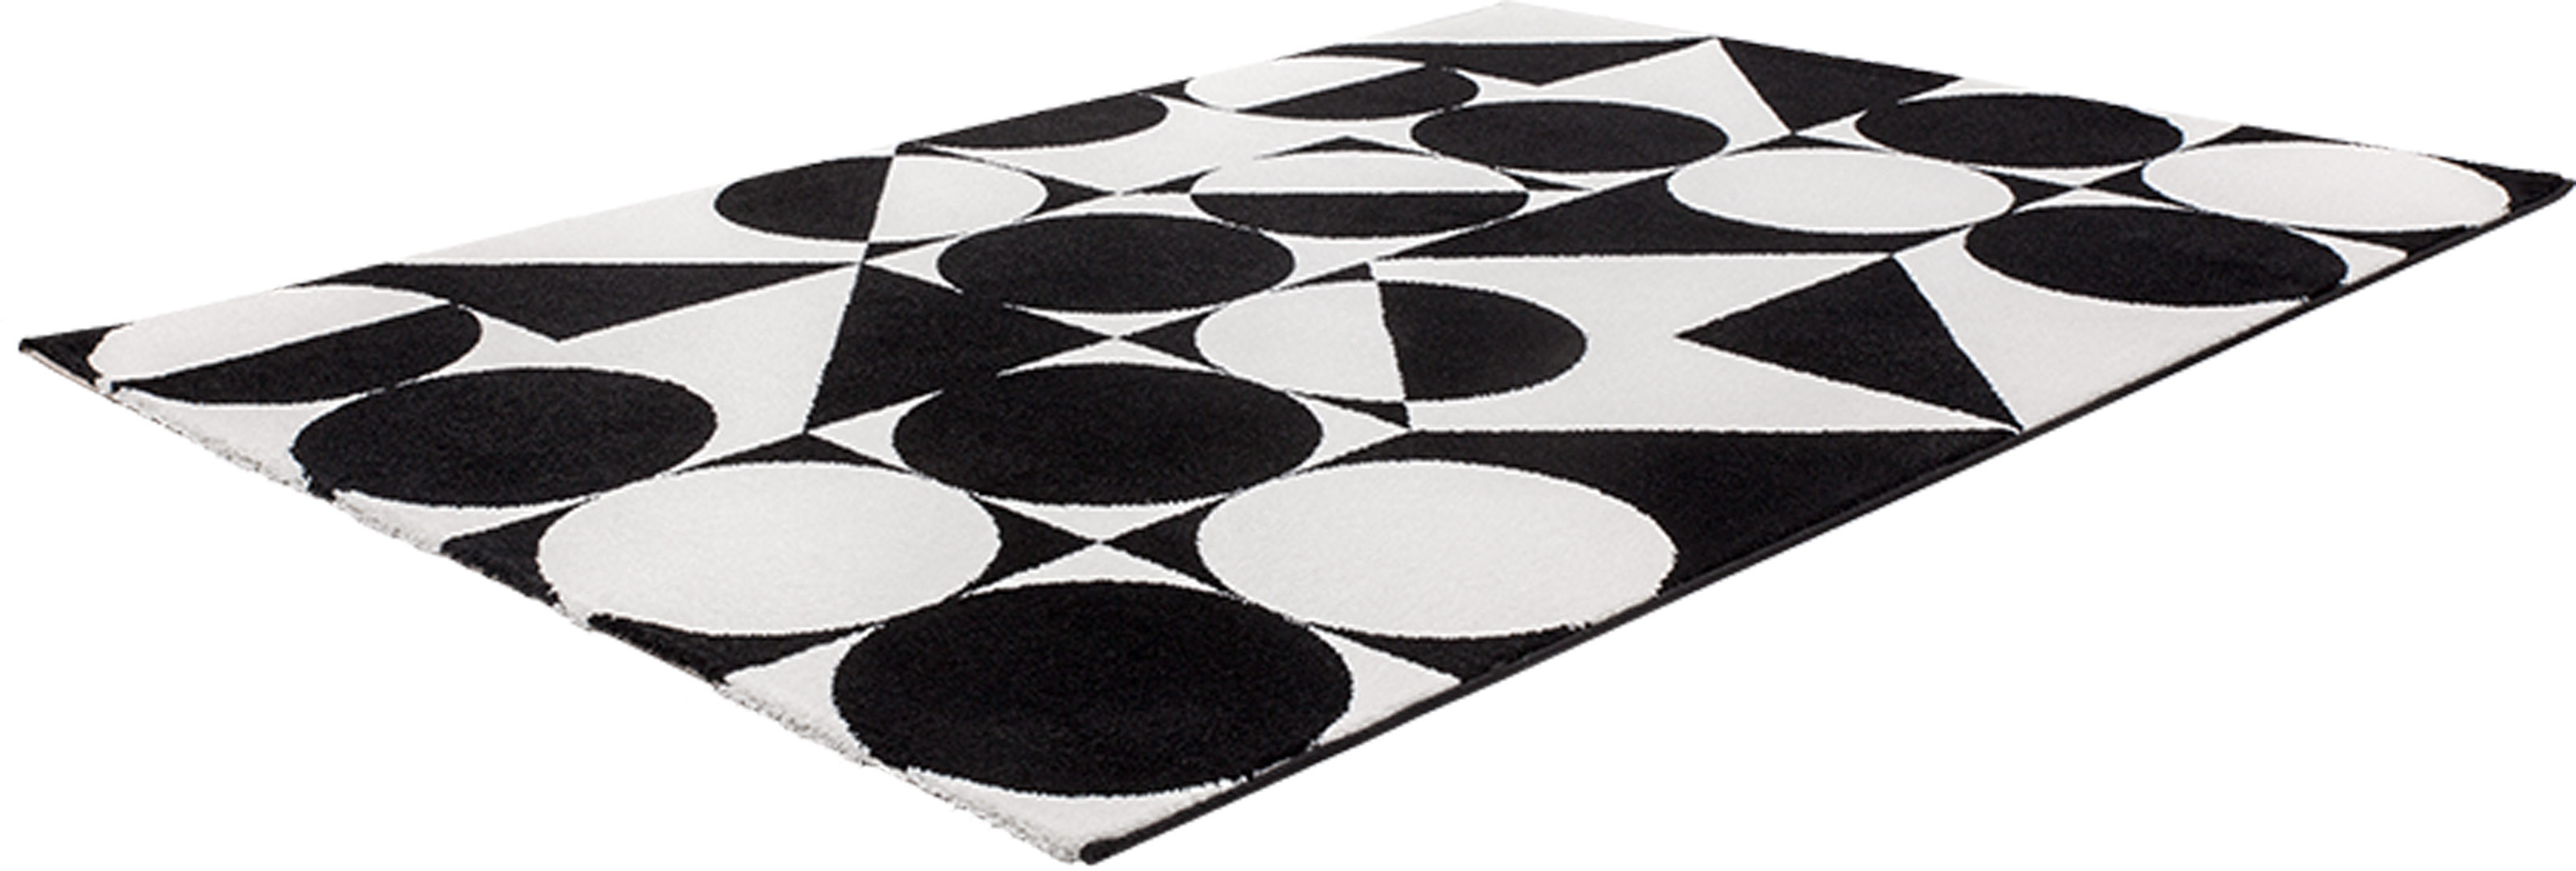 tapis g om trique noir et blanc rectangle design metrix. Black Bedroom Furniture Sets. Home Design Ideas